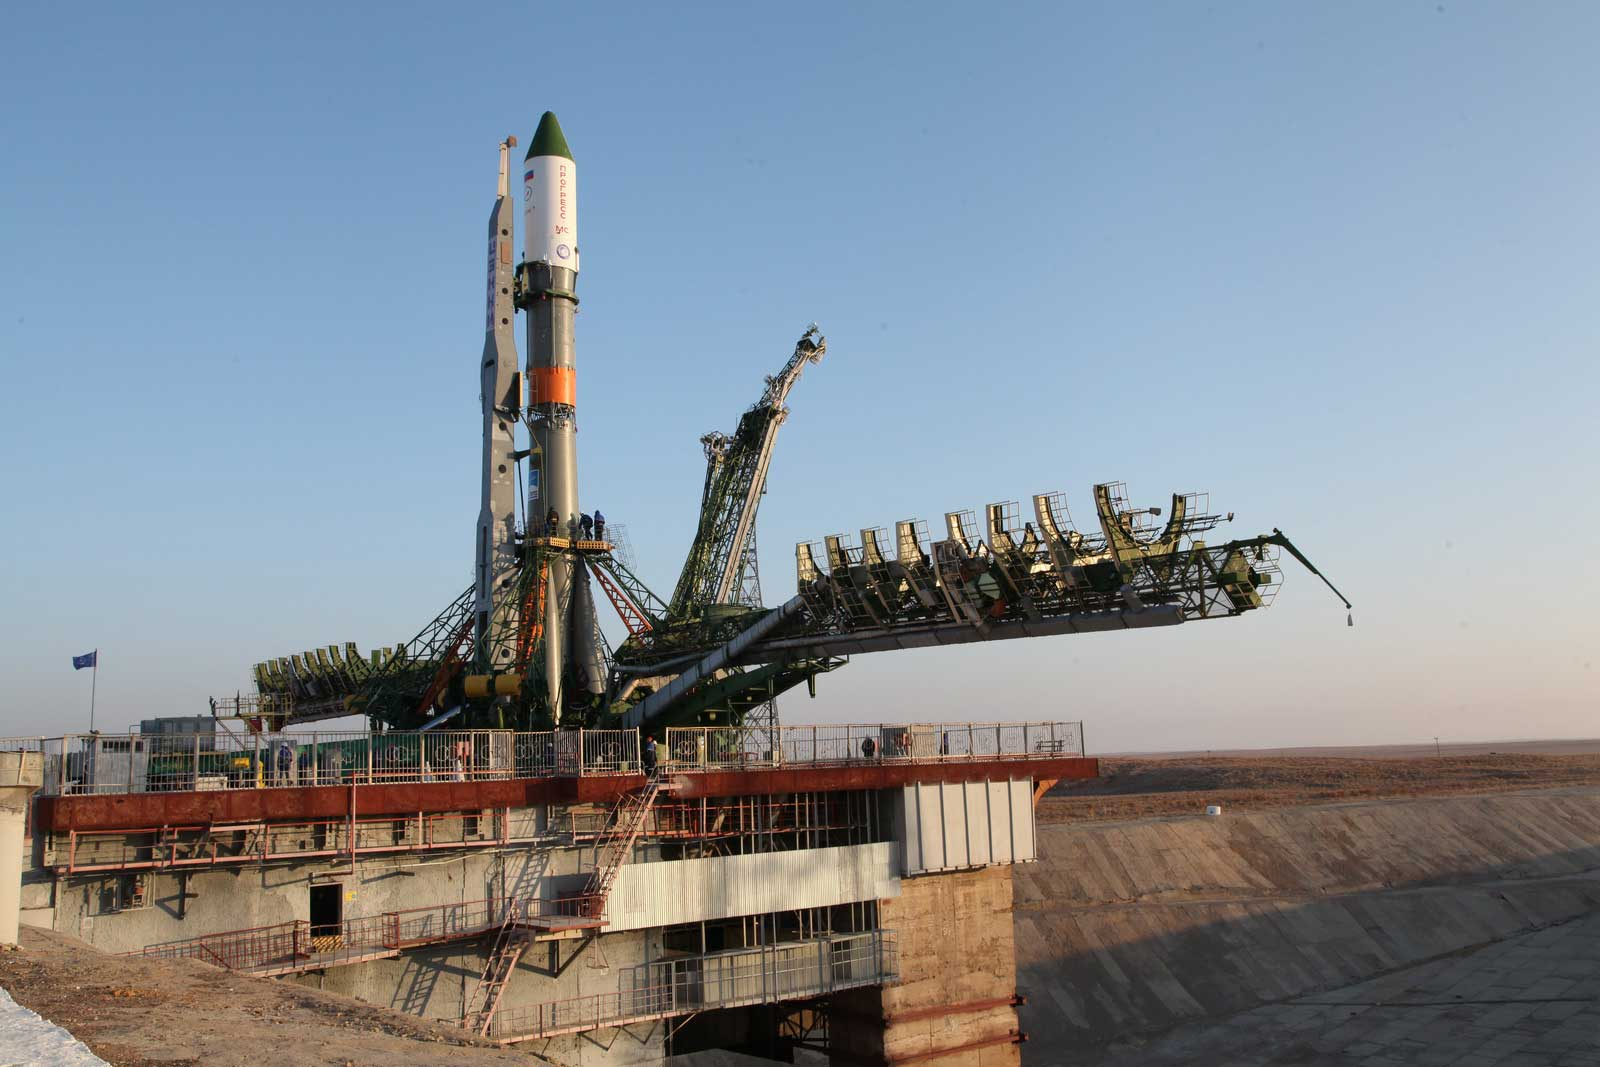 Progress MS-04 was launched atop the Soyuz-U carrier rocket from the Baikonur space center in Kazakhstan on Dec. 1. Later, Roscosmos reported that the spacecraft was lost after an anomaly occurred during the third stage operation.